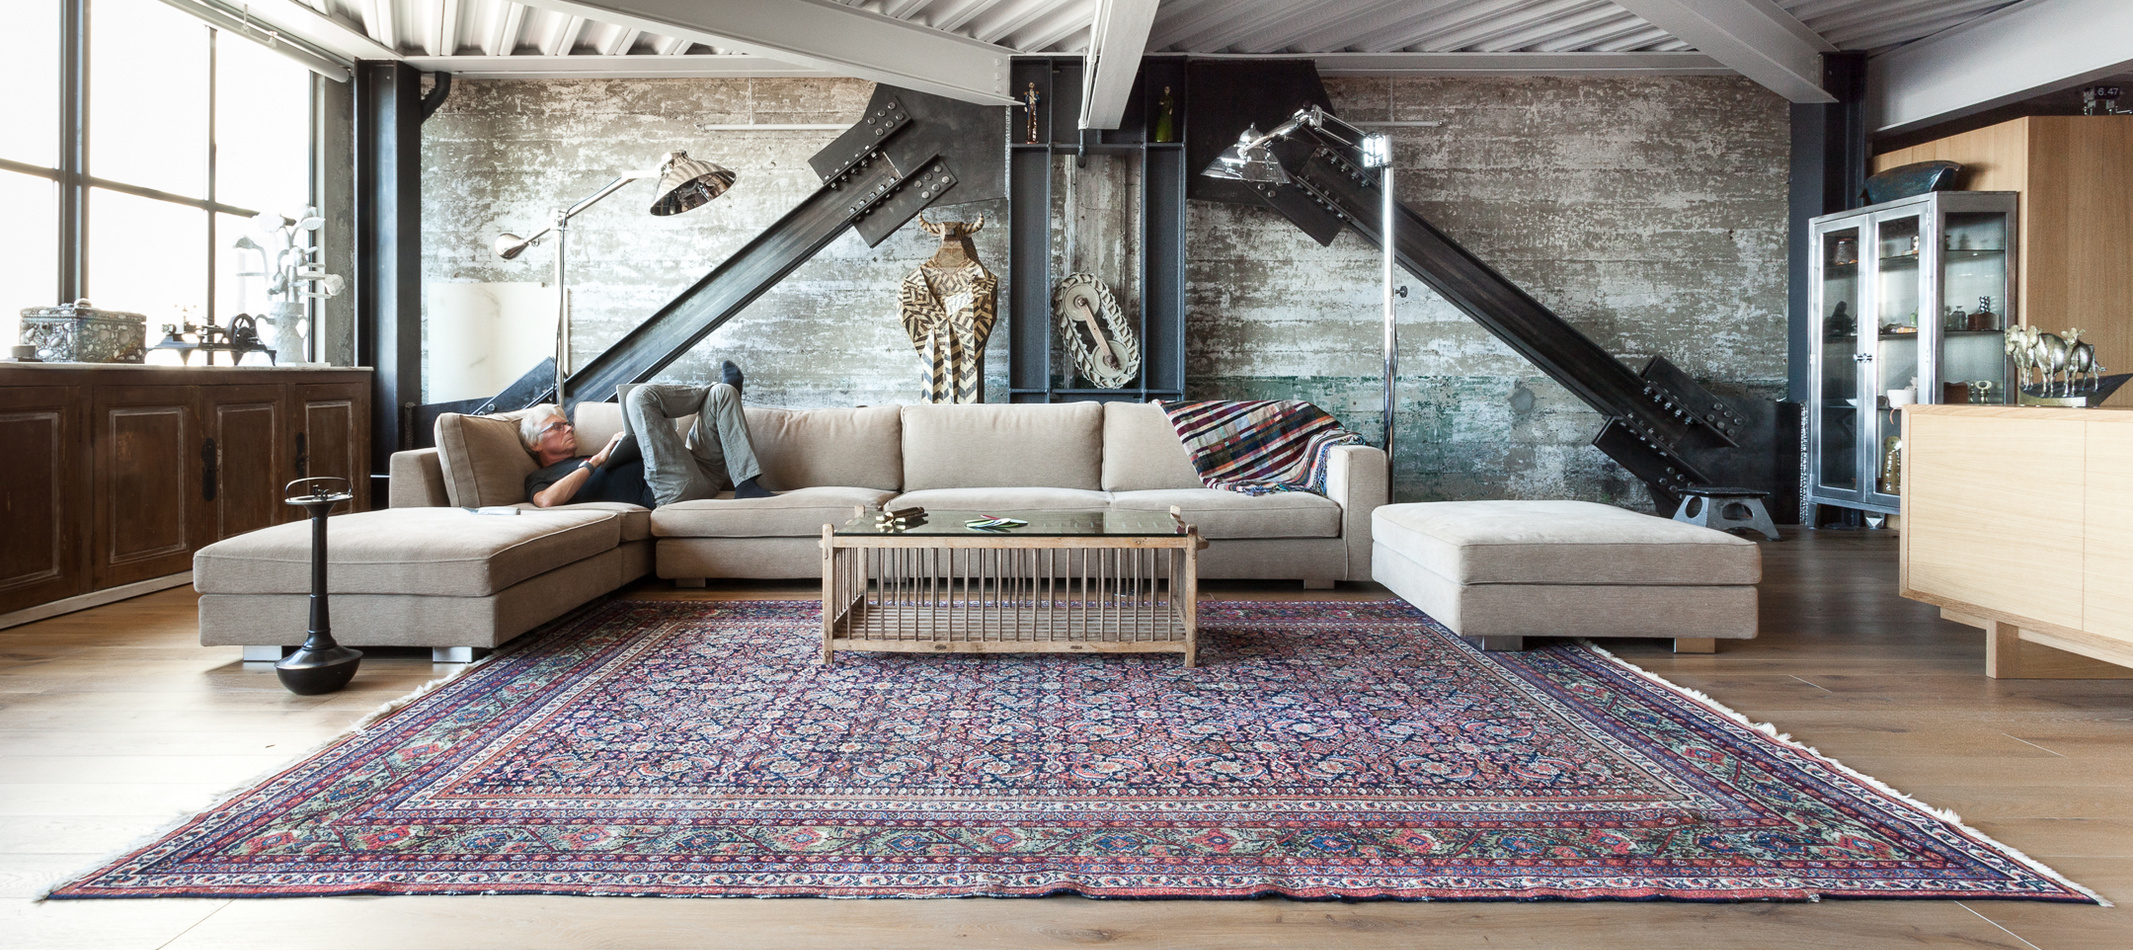 Large Rugs Sydney Persian Rug Co Handwoven Rug Specialists